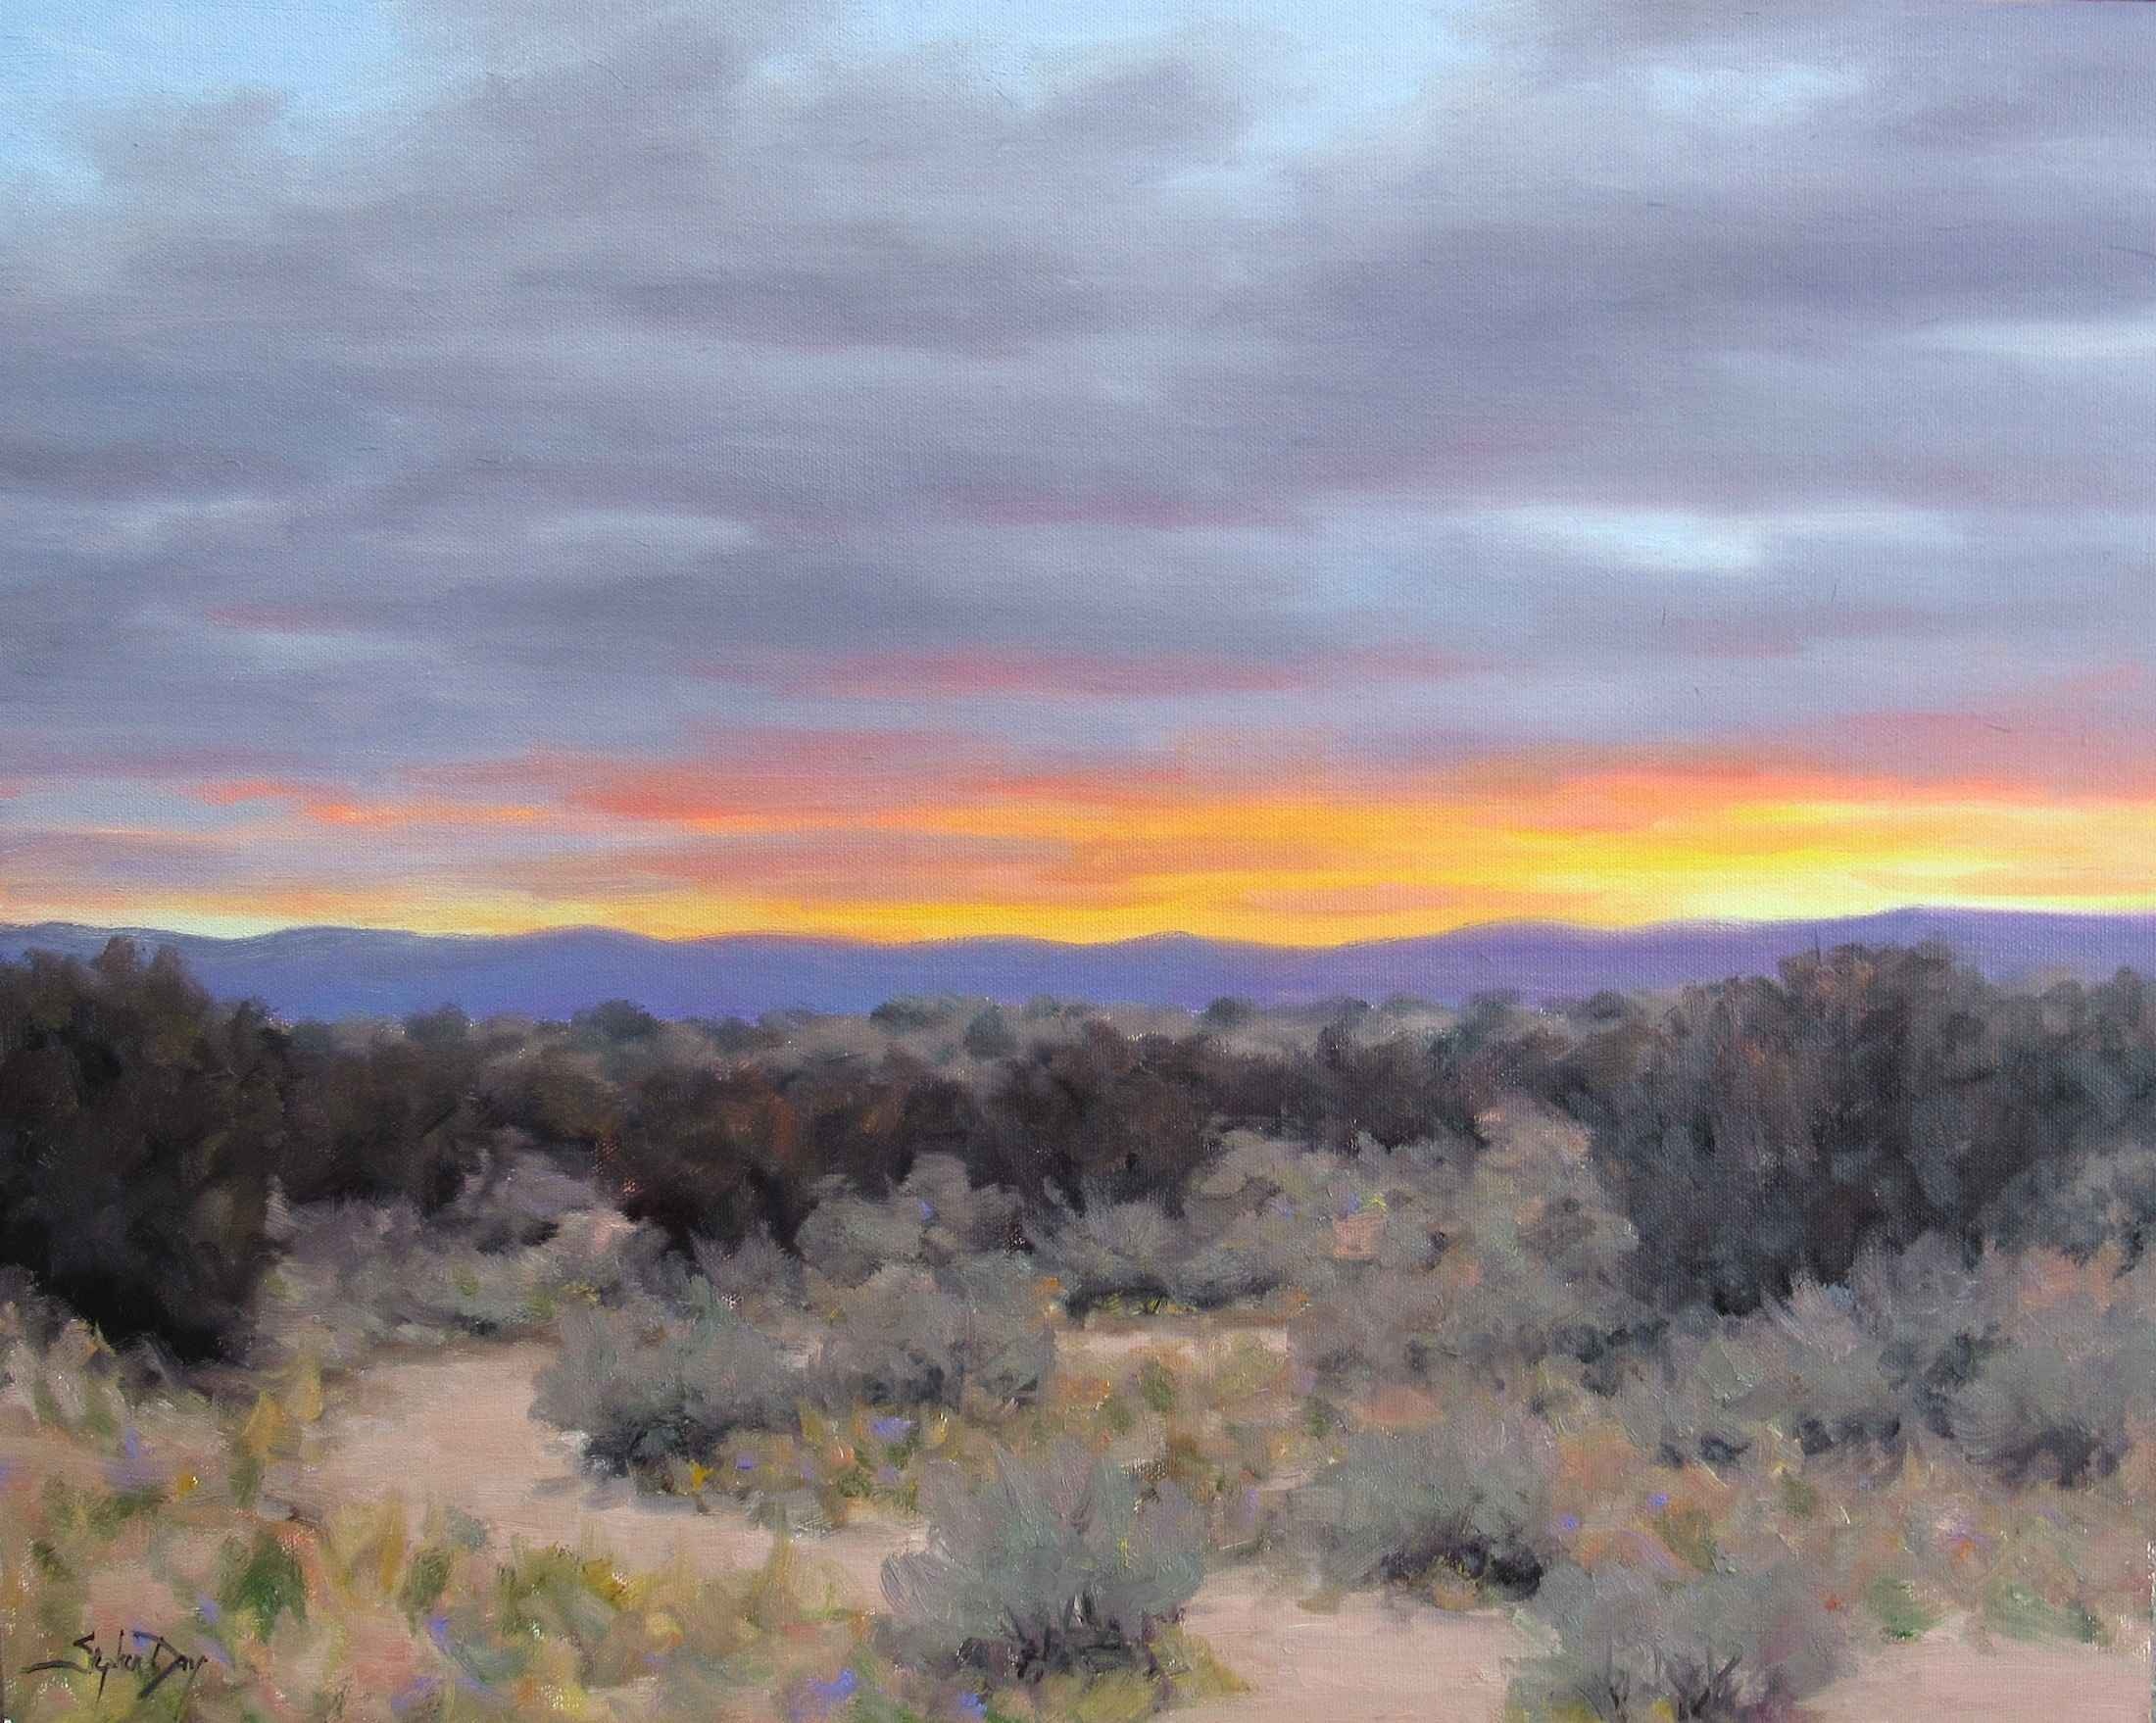 In the Evening Calm by  Stephen Day - Masterpiece Online